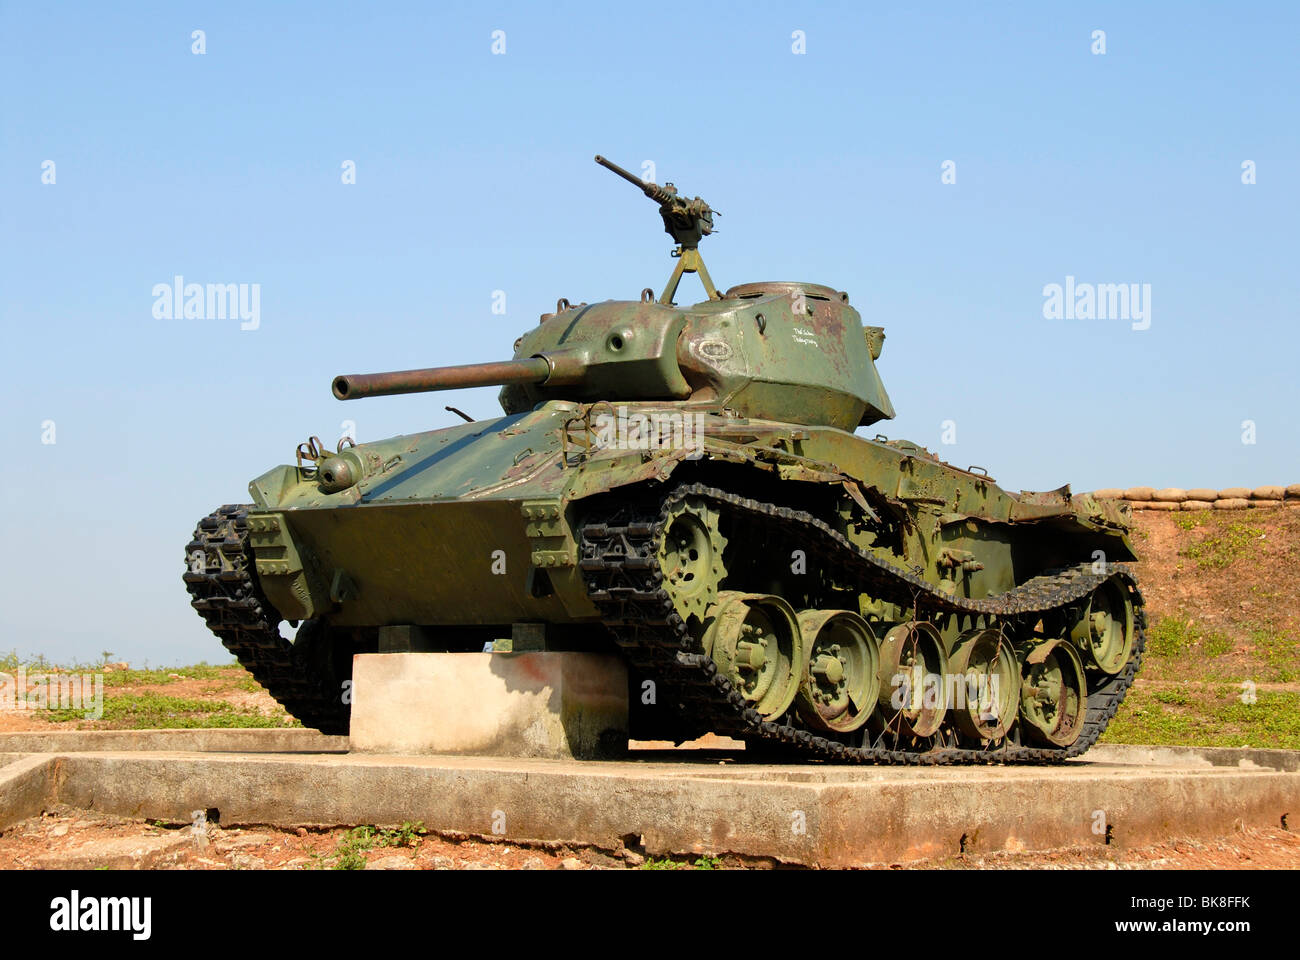 First Indochina War 1954, old French tank on the A1 Hill, Dien Bien Phu, Vietnam, Southeast Asia, Asia Stock Photo